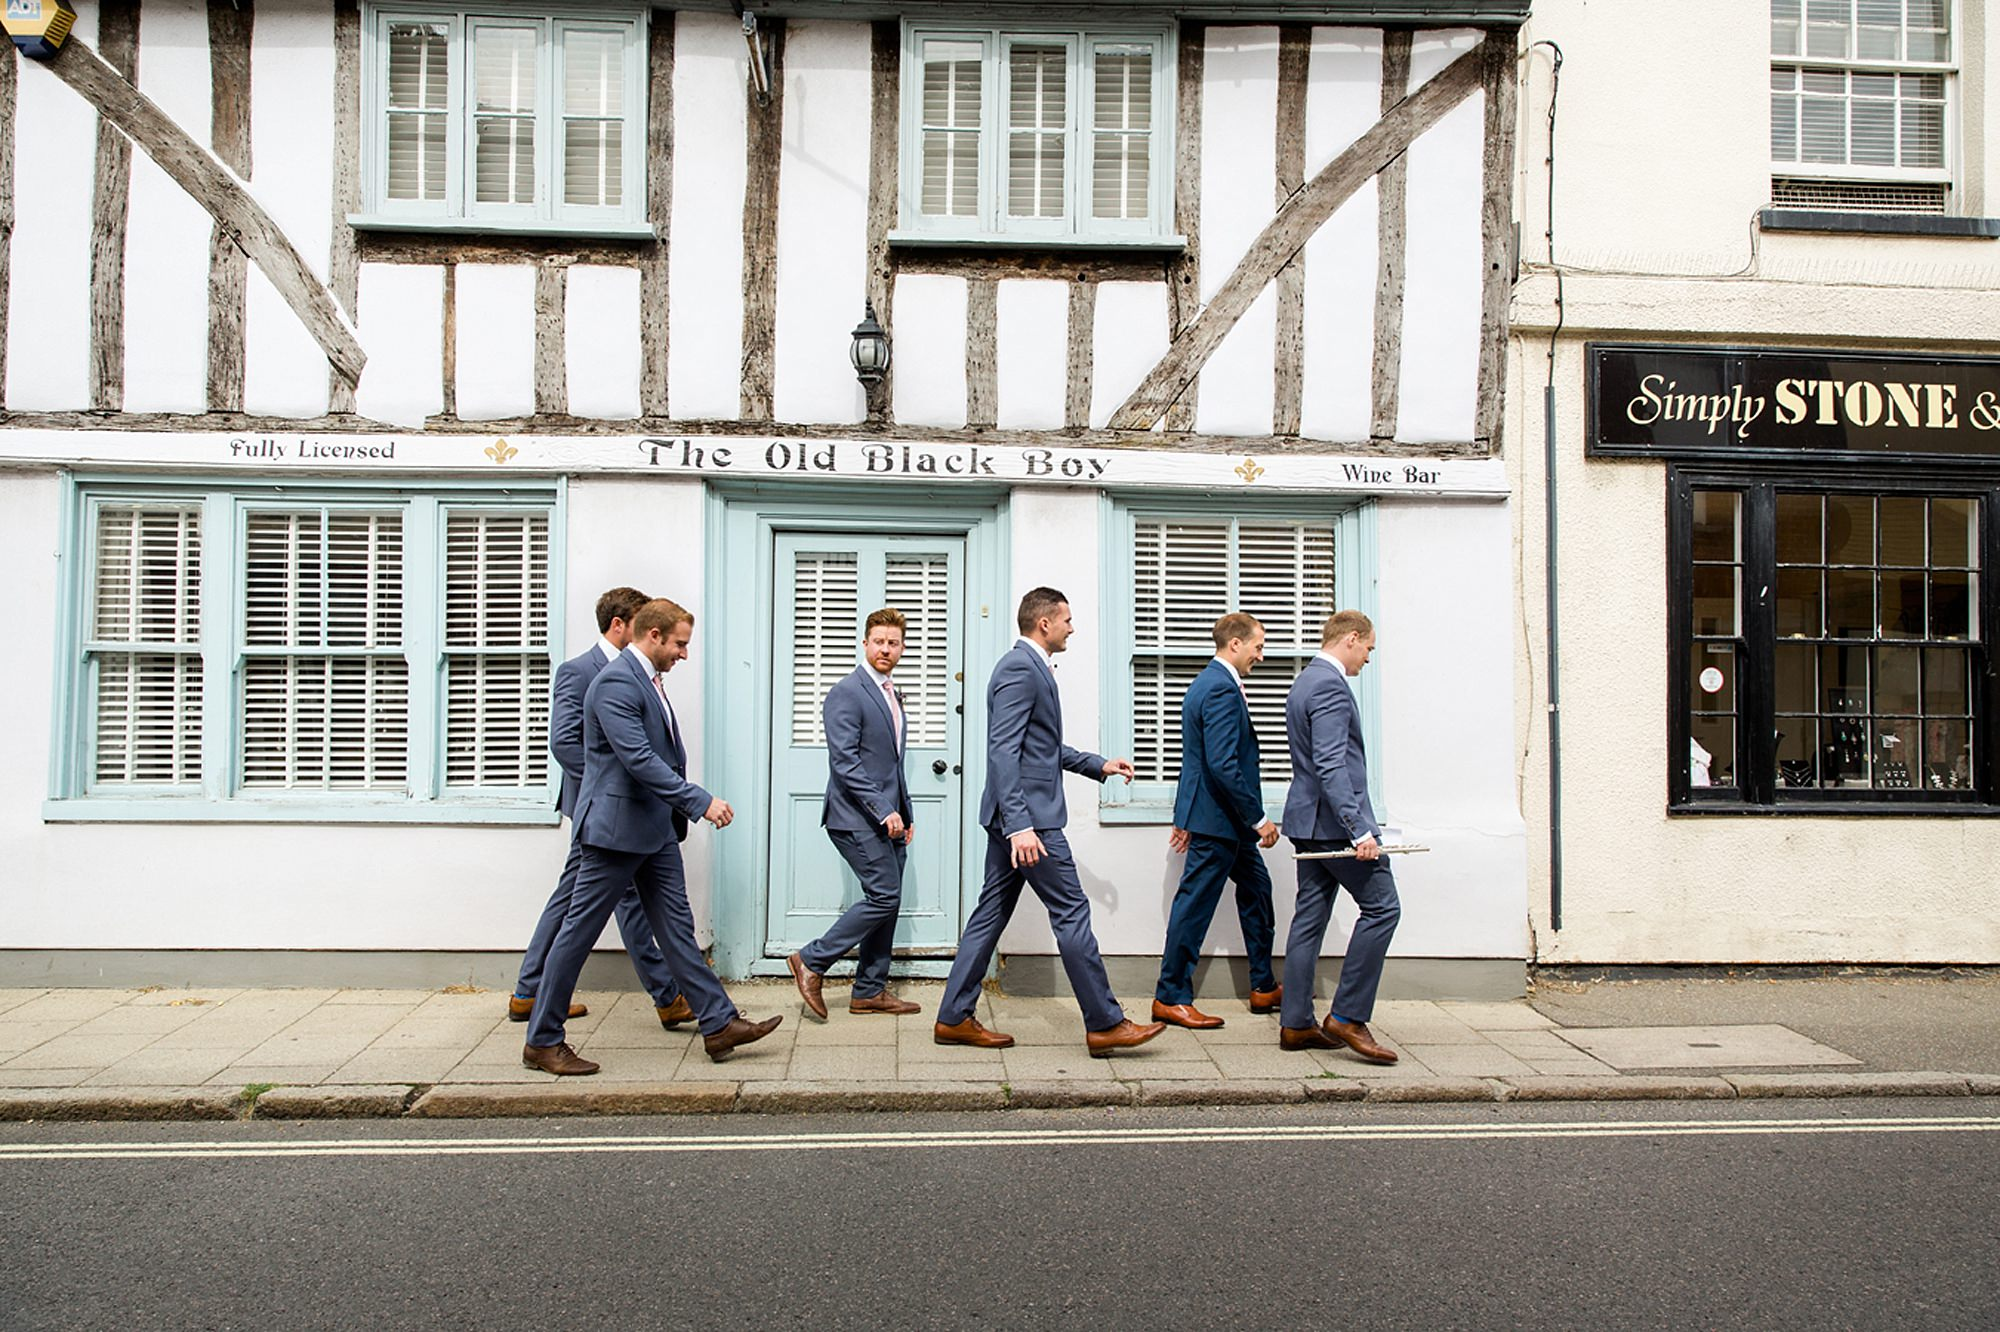 Marks Hall Estate wedding photography groom's party walking to church